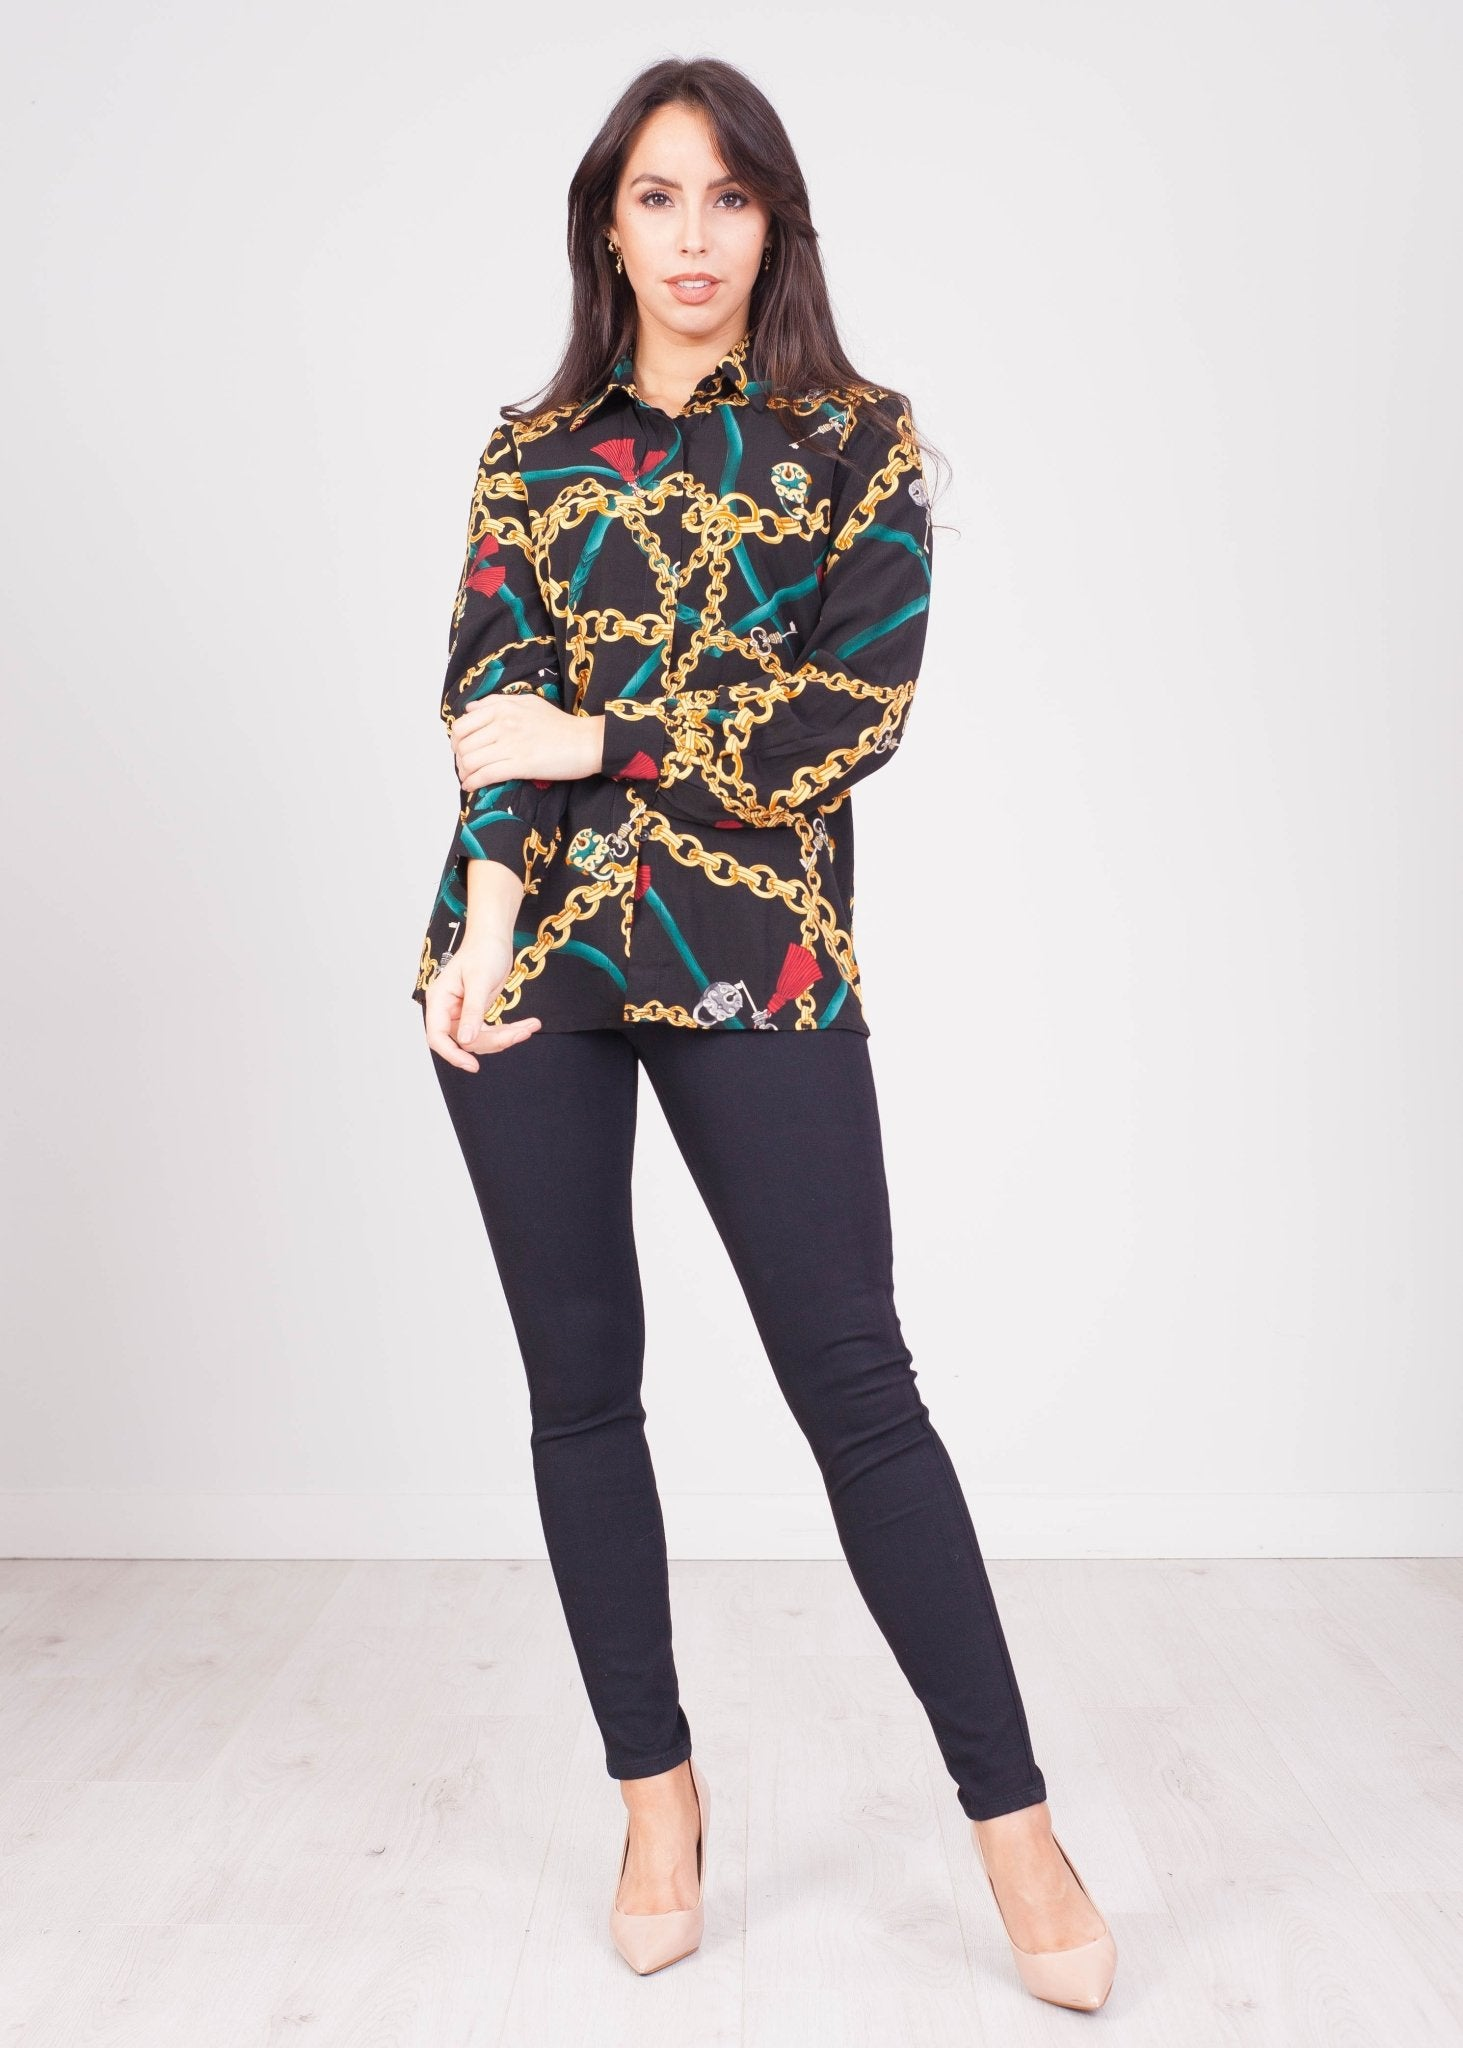 Emilia Black Chain Print Shirt - The Walk in Wardrobe